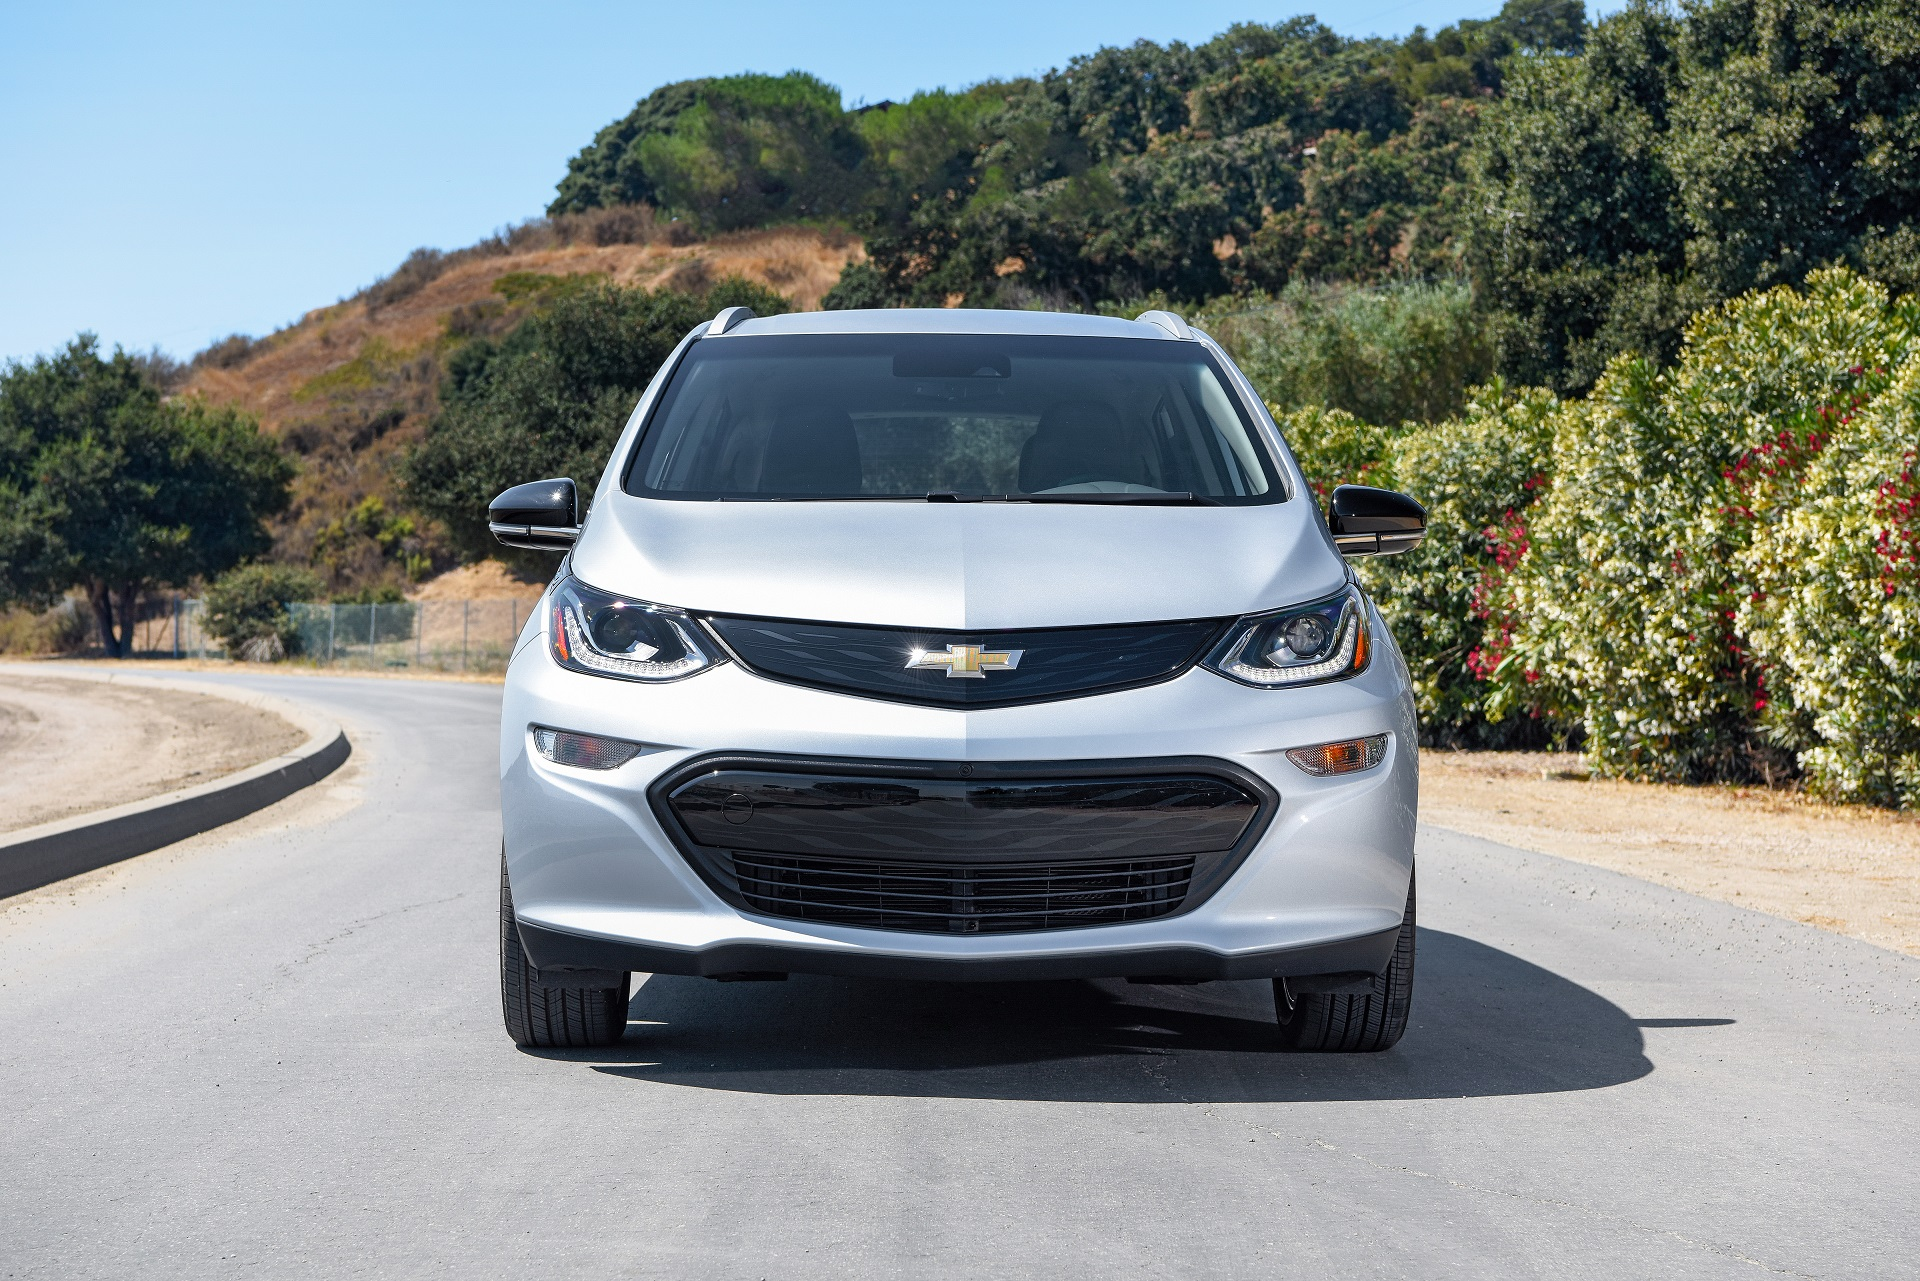 2017 Chevrolet Cruze Hatch first drive pact flavor with a twist